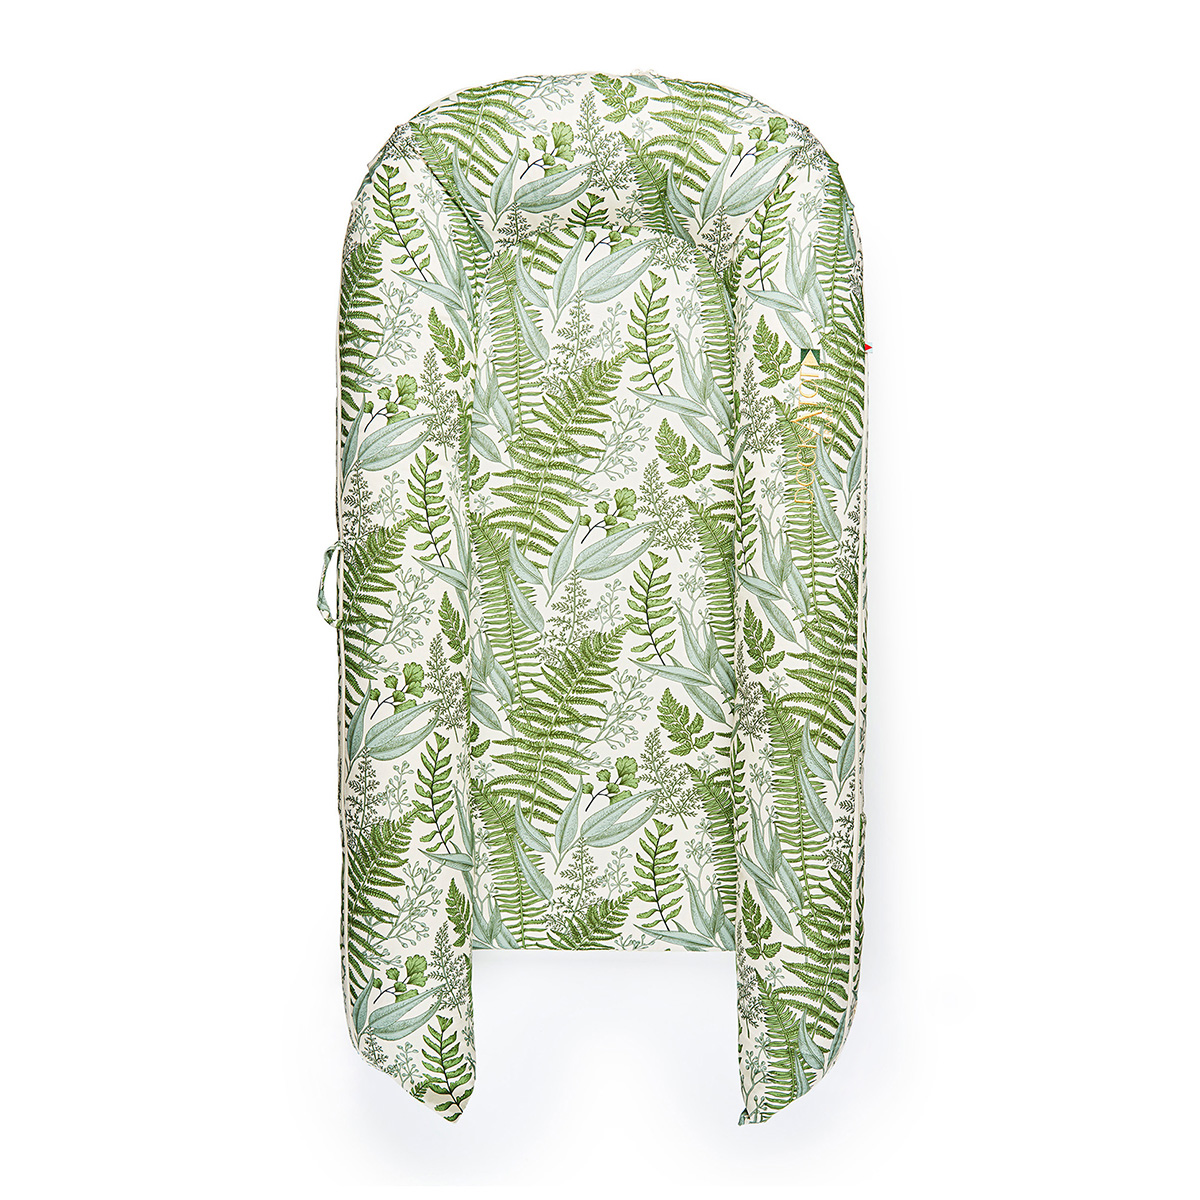 DockATot Grand Cover in Lush & Fern Green Ferns Print